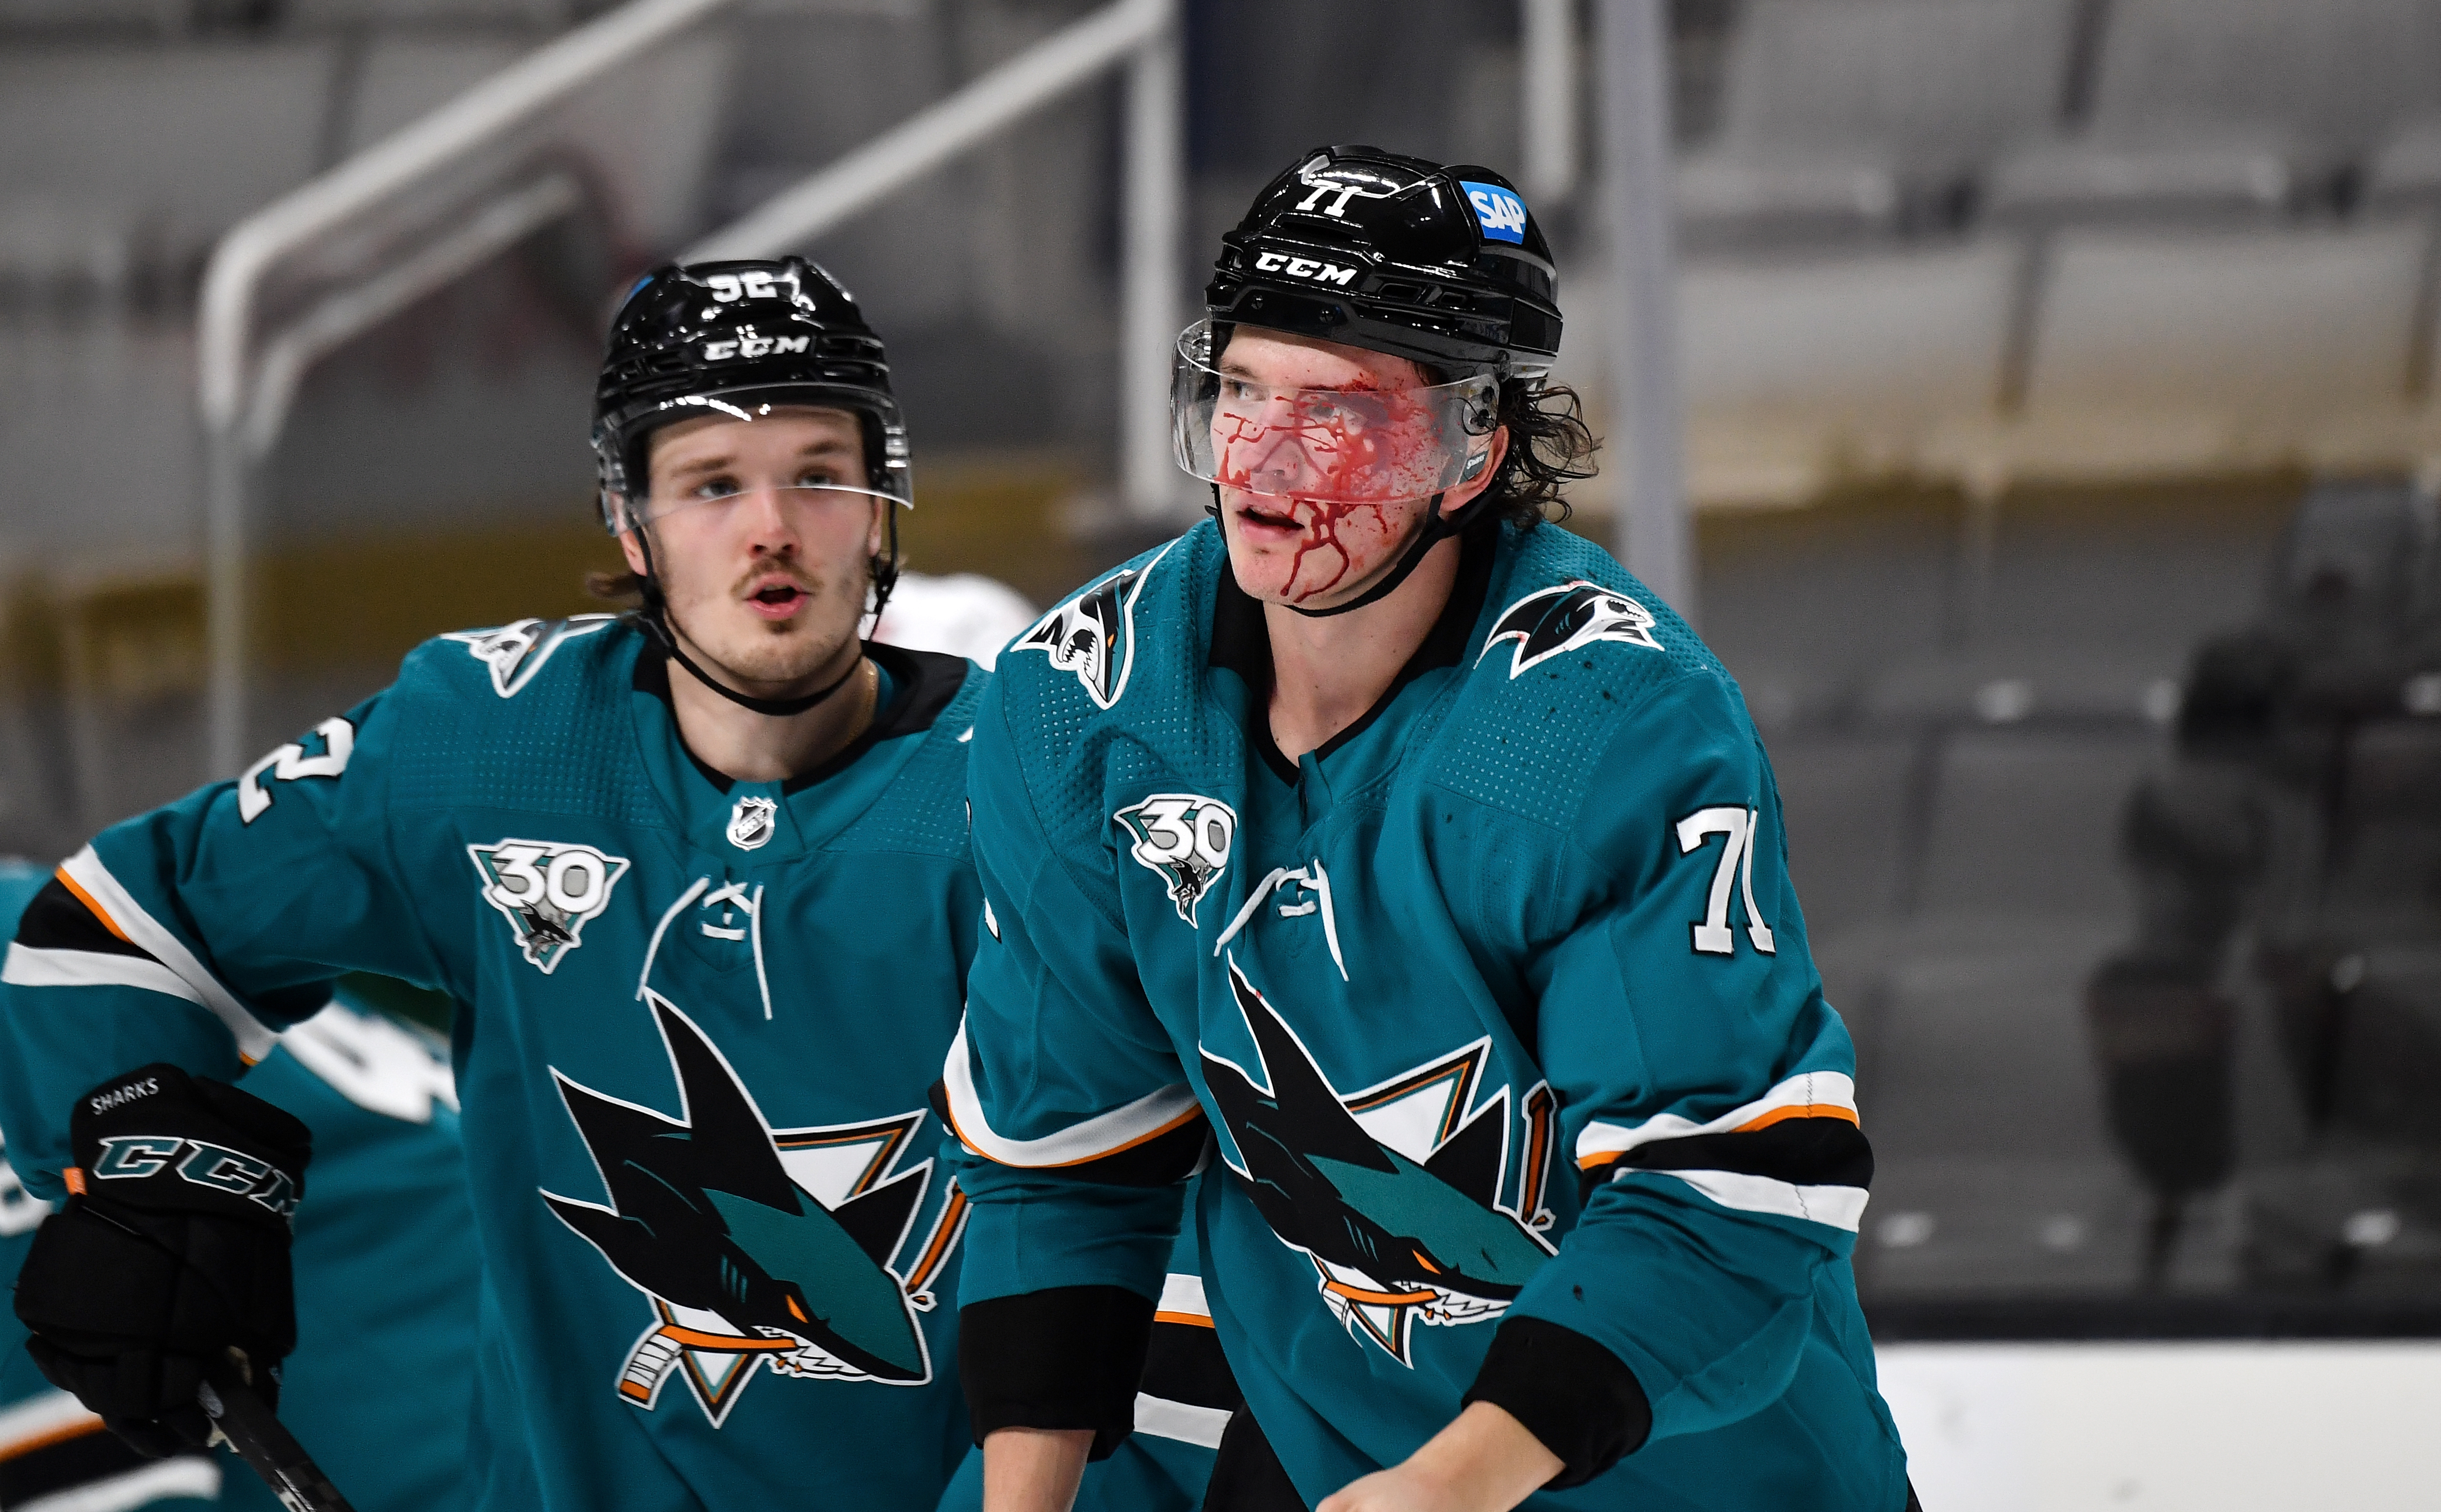 Nicolai Knyzhov #71 of the San Jose Sharks skates off after a fight against the Minnesota Wild at SAP Center on February 22, 2021 in San Jose, California.